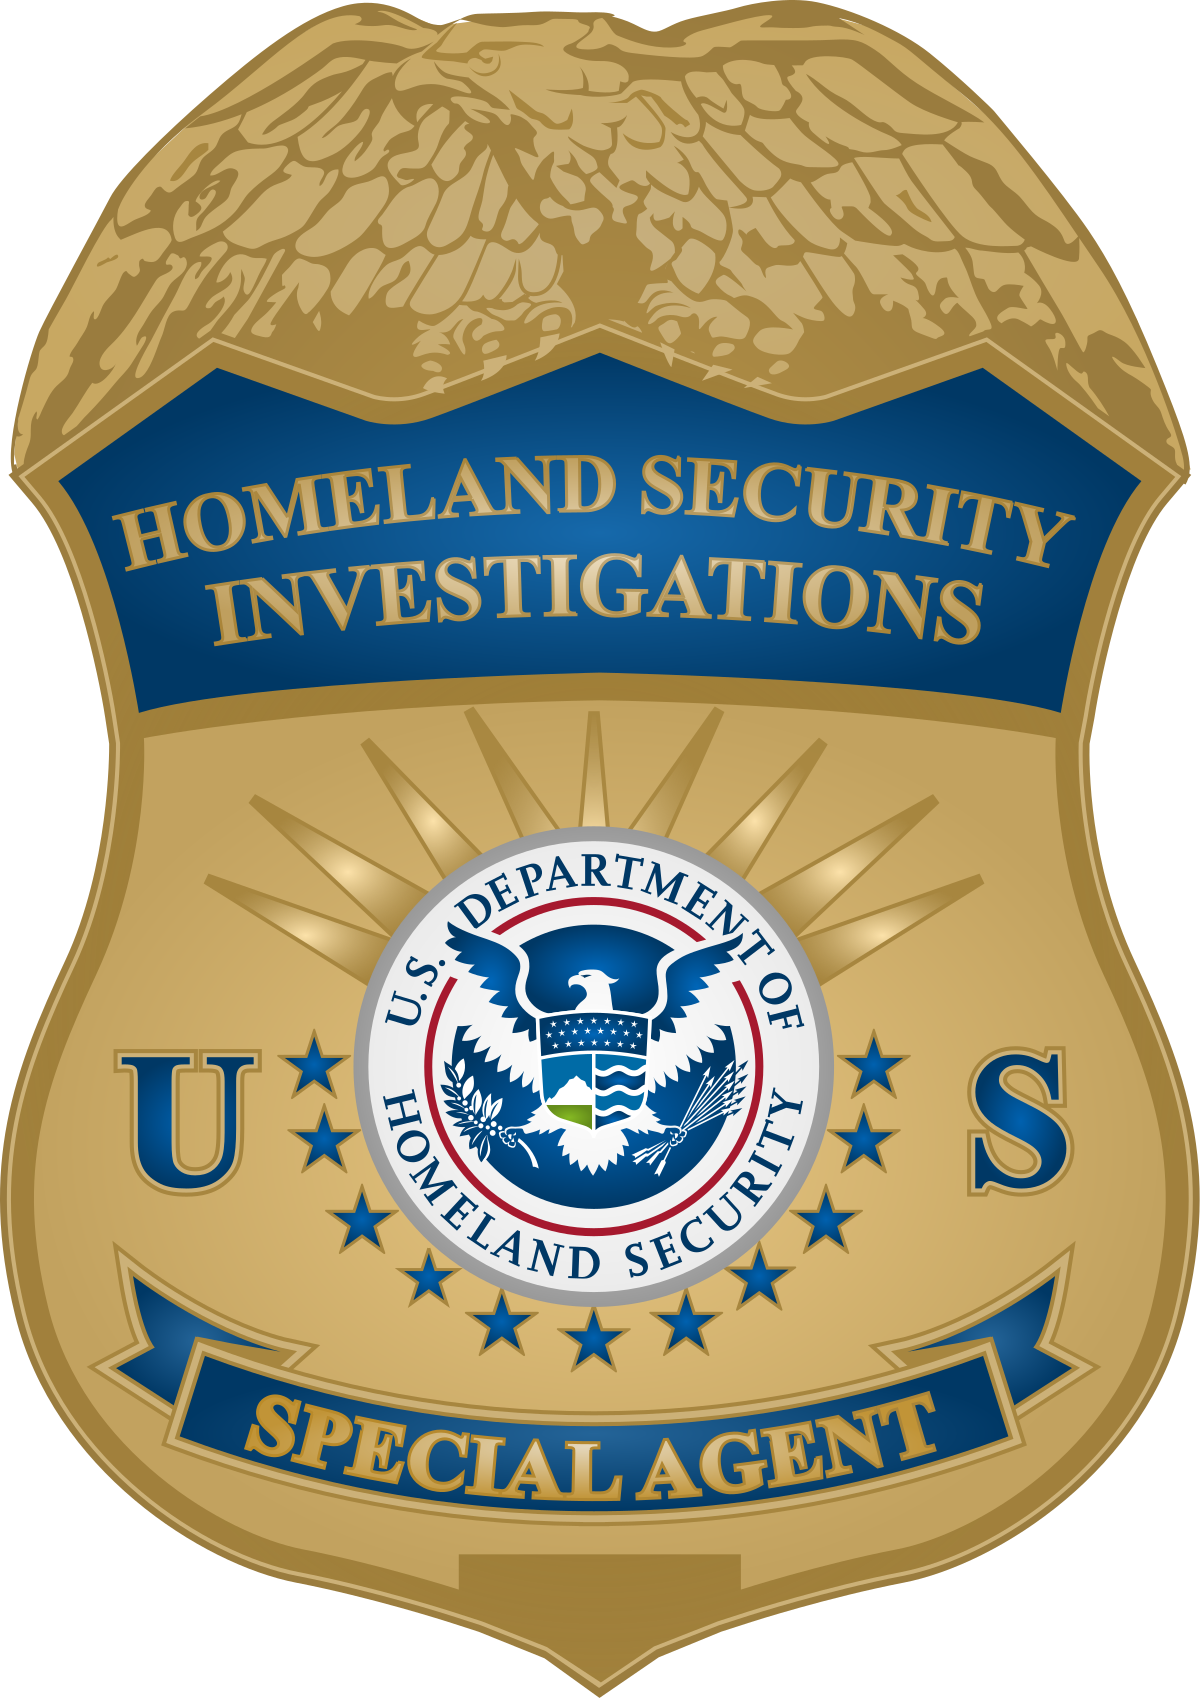 vector freeuse library U s immigration and. Military clipart national security.